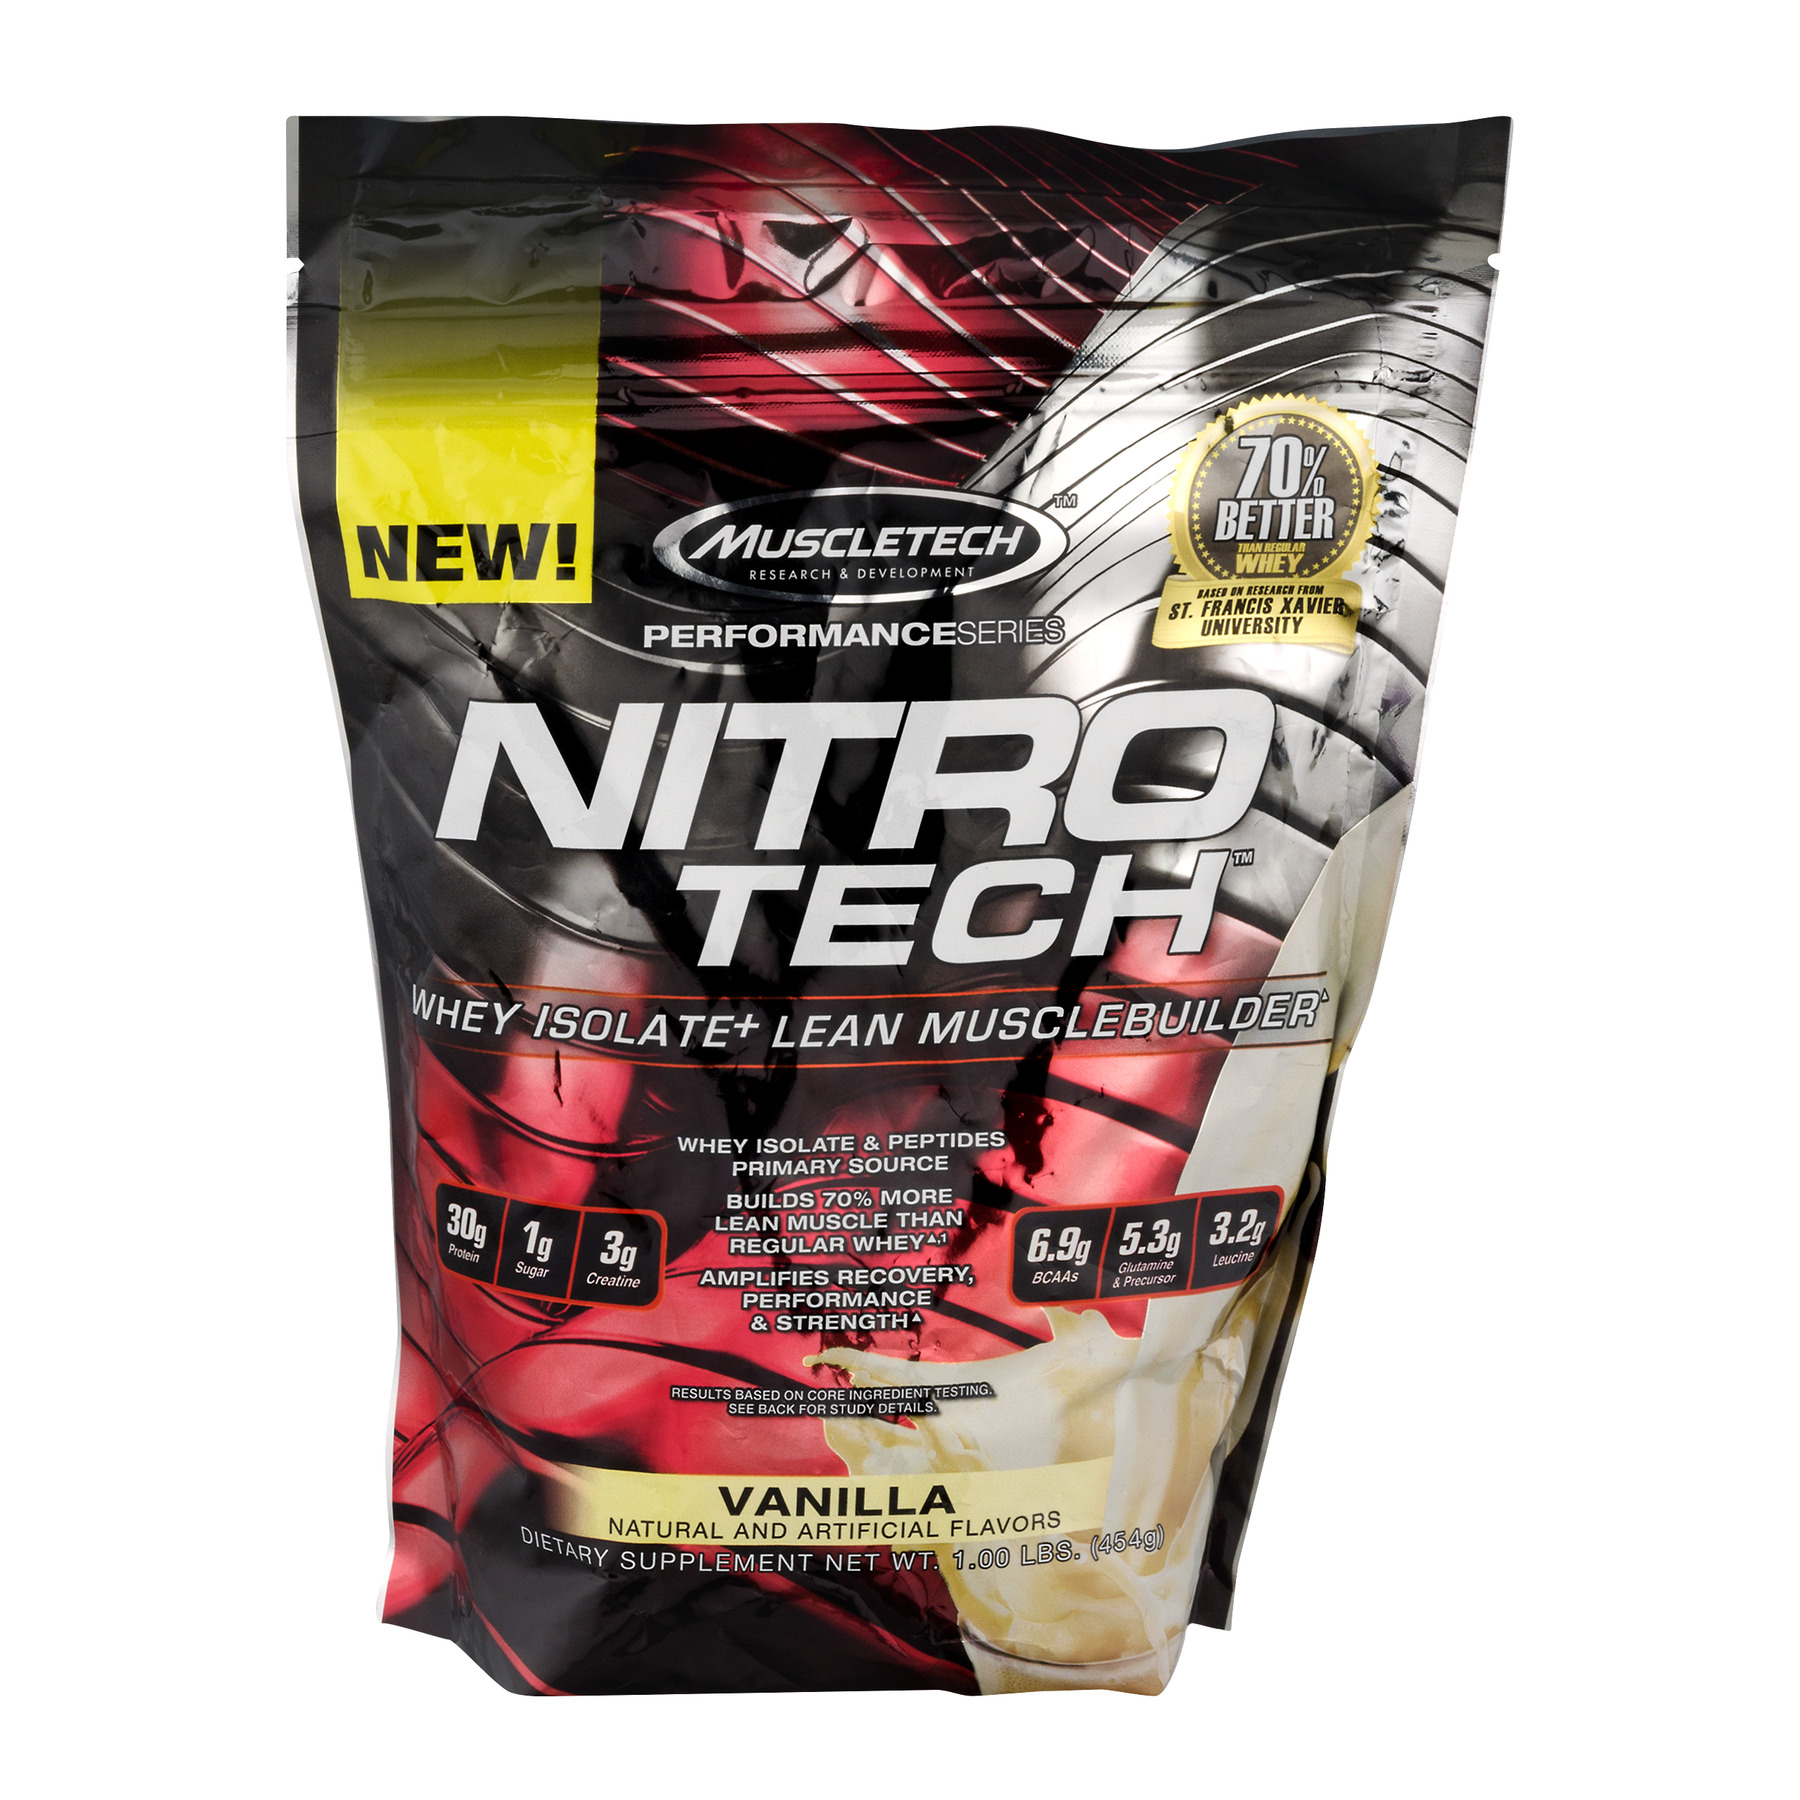 Muscletech Nitro Tech Whey Isolate Protein Powder, Vanilla, 30g Protein, 1 Lb